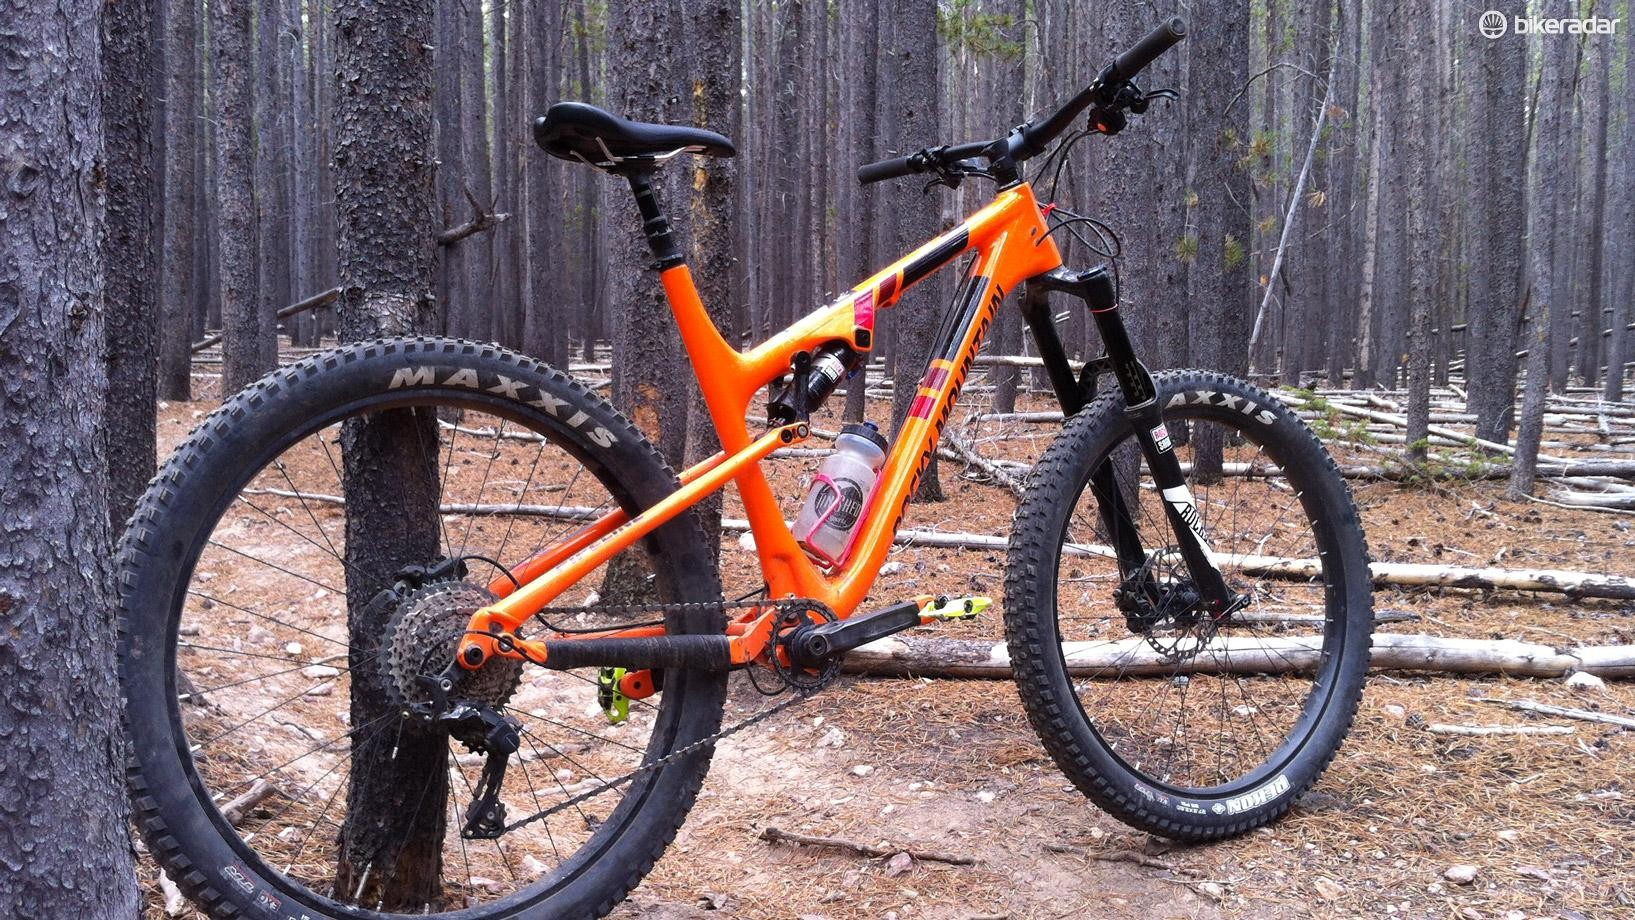 Plus size tires give the Pipeline a huge dose of confidence